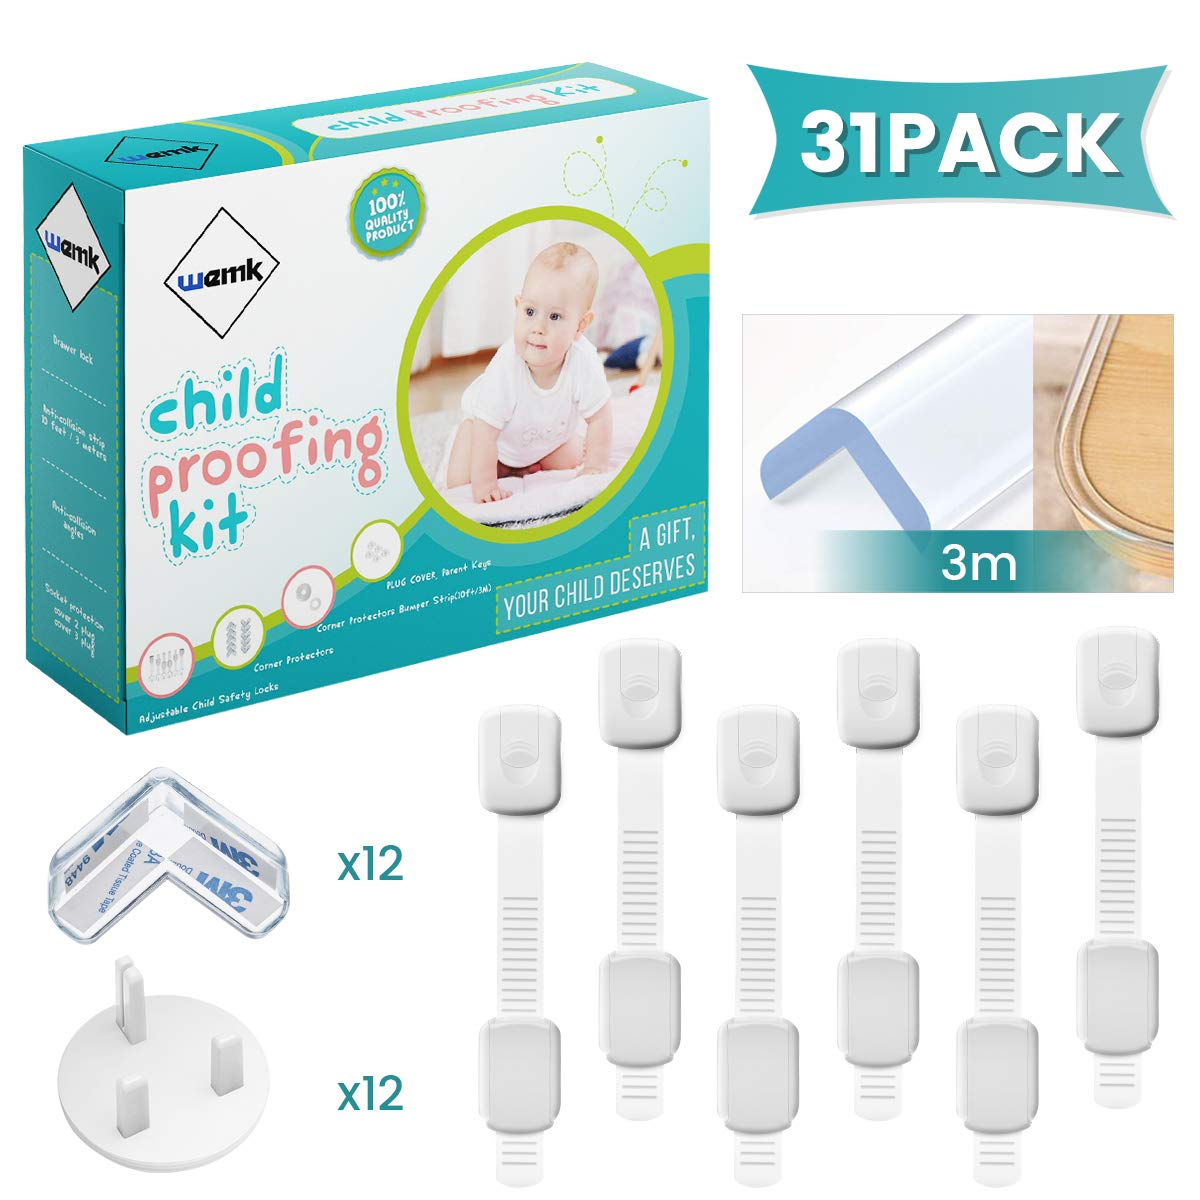 Wemk Baby Proofing Kit, 31Pcs Child Safety Kit Including 3m/9.8ft Safety Edge Guard, 6 Pcs Adjustable Child Safety Locks, 12Pcs Child Safety Plug Covers, 12Pcs Corner Guards, Pack with Gift Box